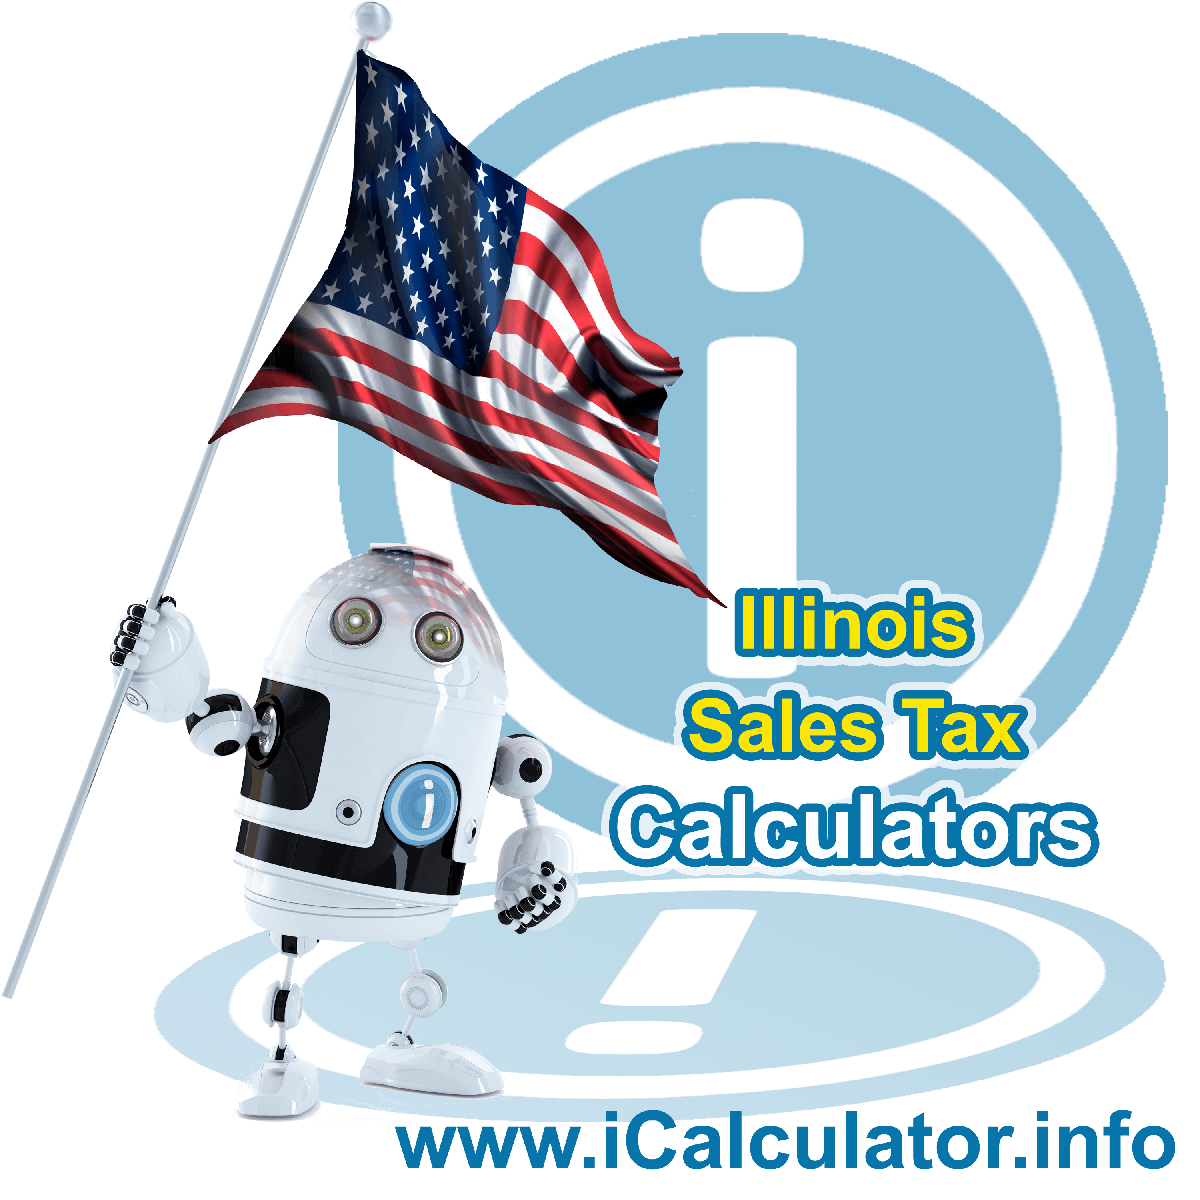 Williamson County Sales Rates: This image illustrates a calculator robot calculating Williamson County sales tax manually using the Williamson County Sales Tax Formula. You can use this information to calculate Williamson County Sales Tax manually or use the Williamson County Sales Tax Calculator to calculate sales tax online.